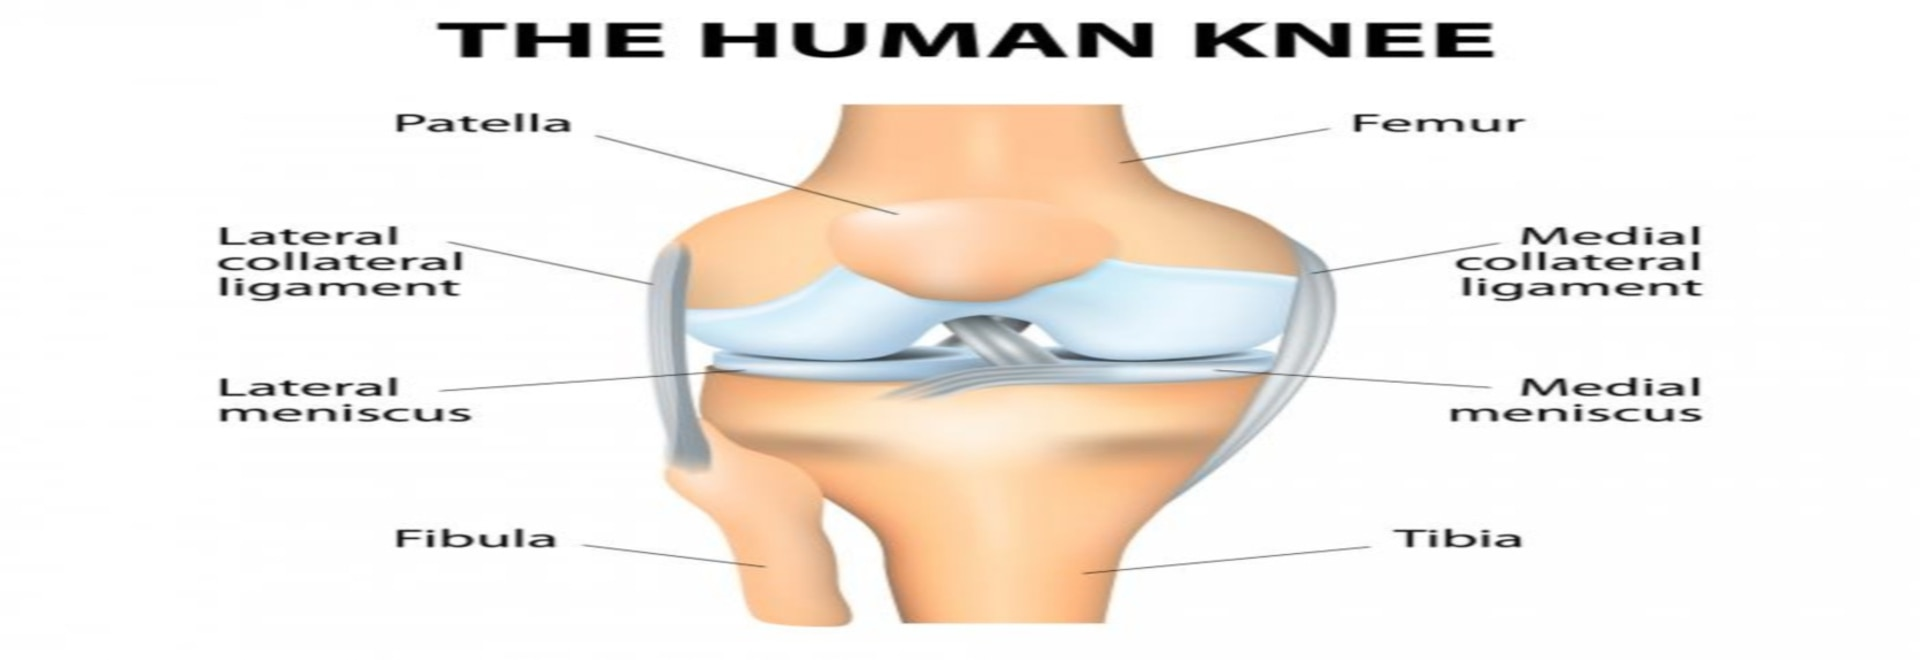 a086c6716c Crepitus of the Knee: Creaky Bones or Something More? - United States